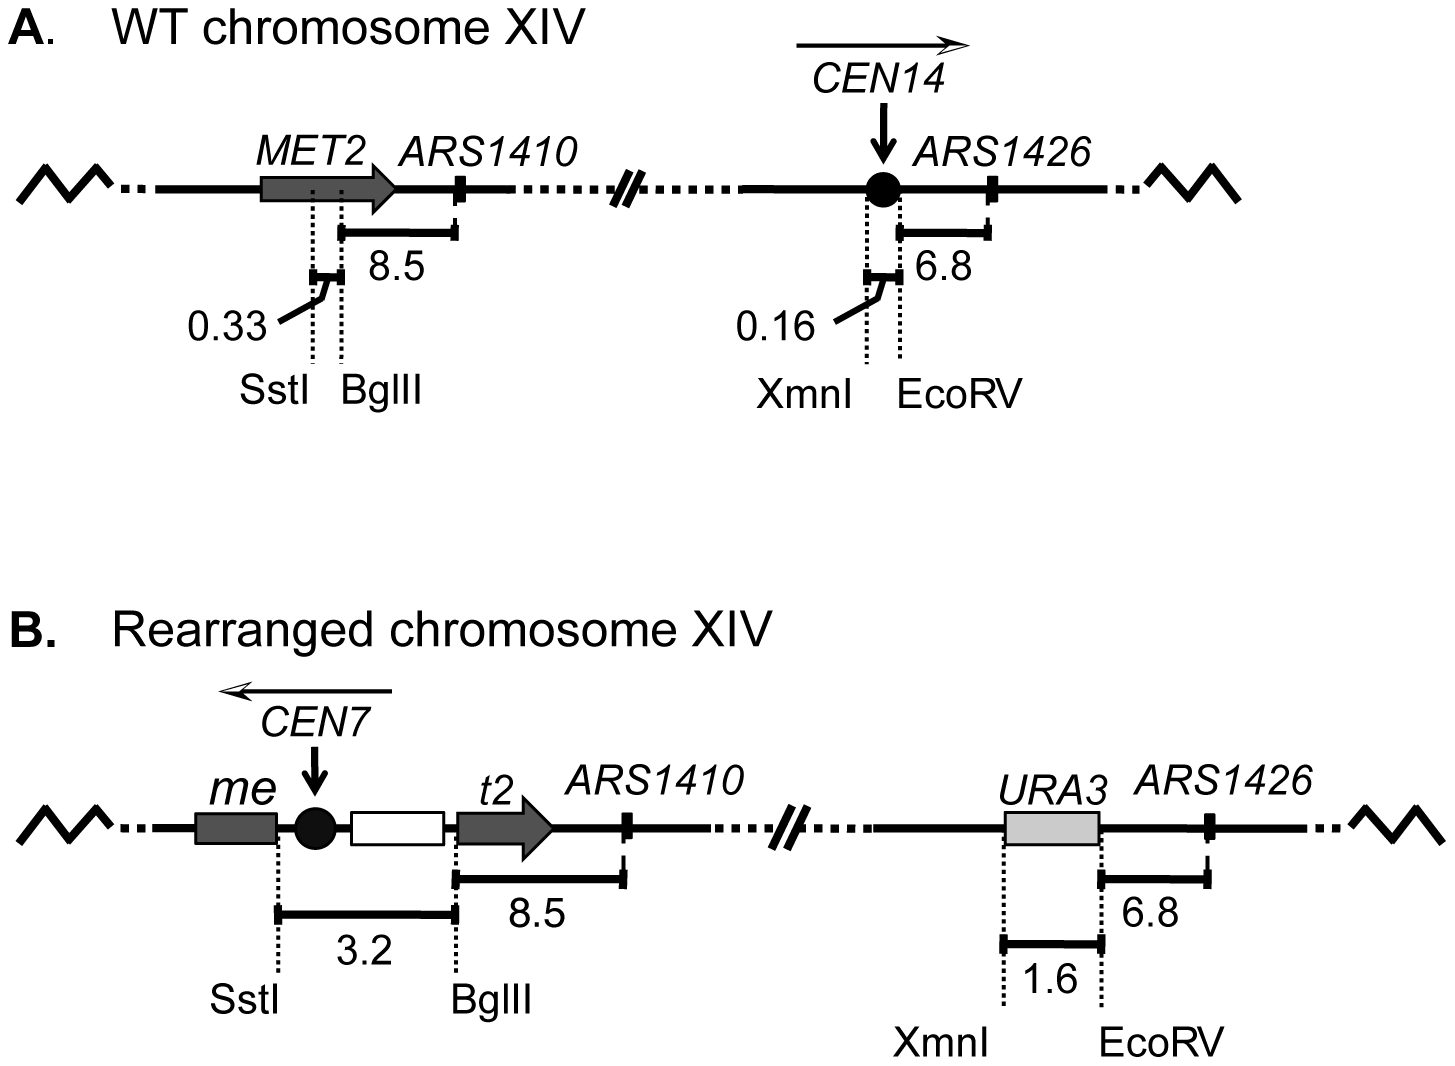 A schematic diagram of chromosome XIV in wild-type (WT) and rearranged strains.